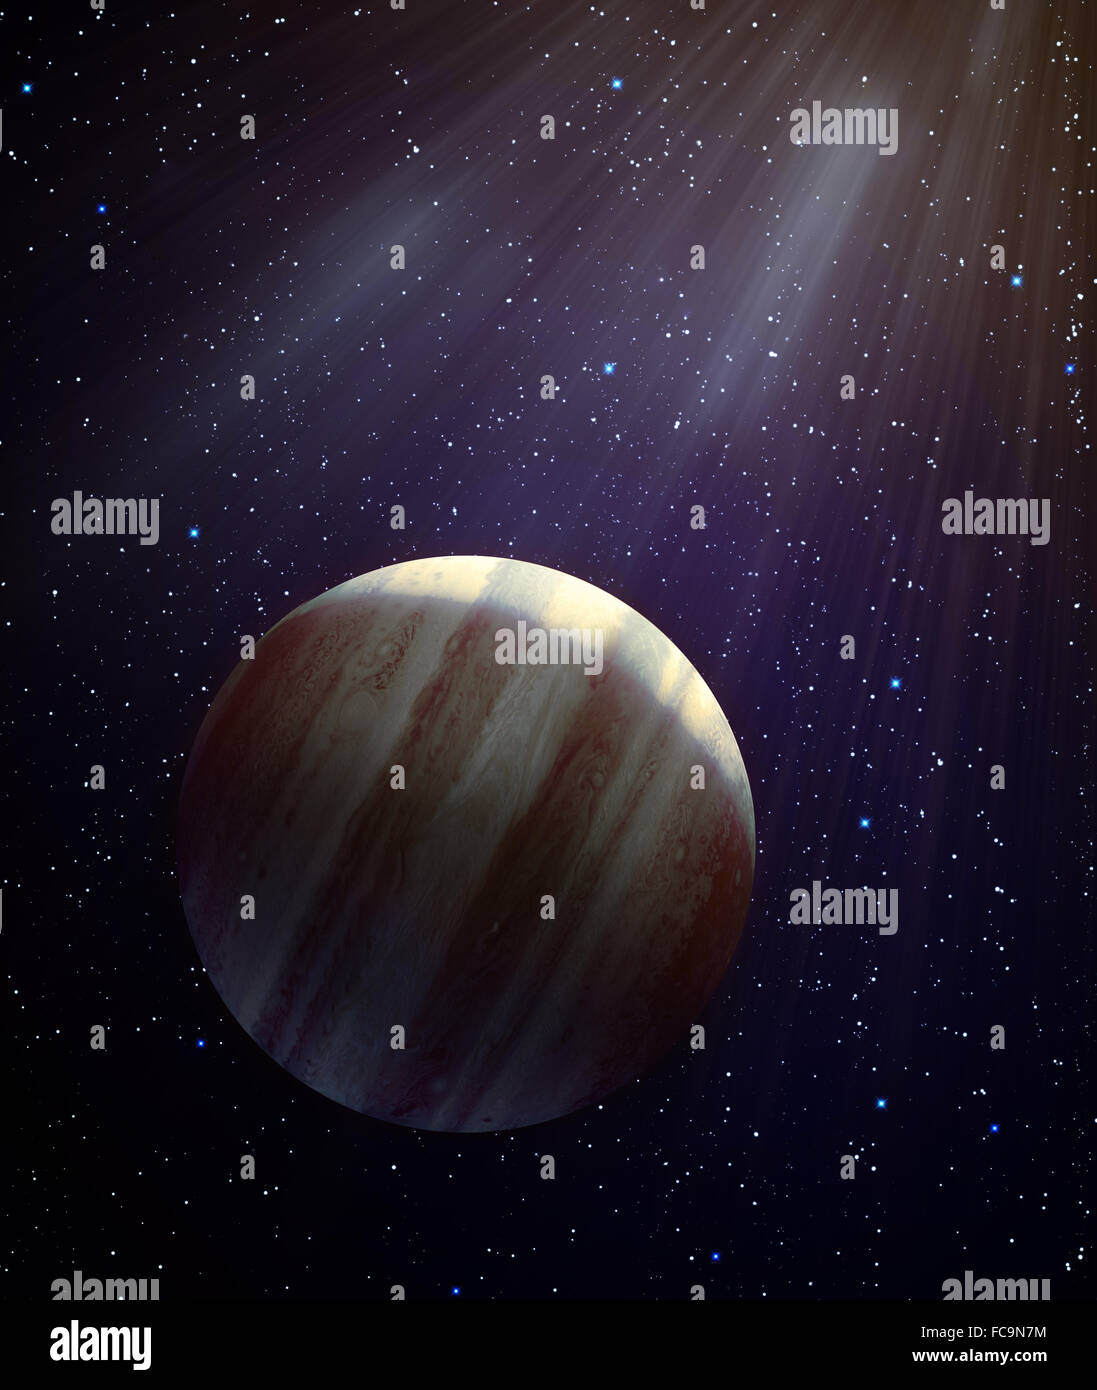 Potential new planet in the solar system - planet X - Stock Image